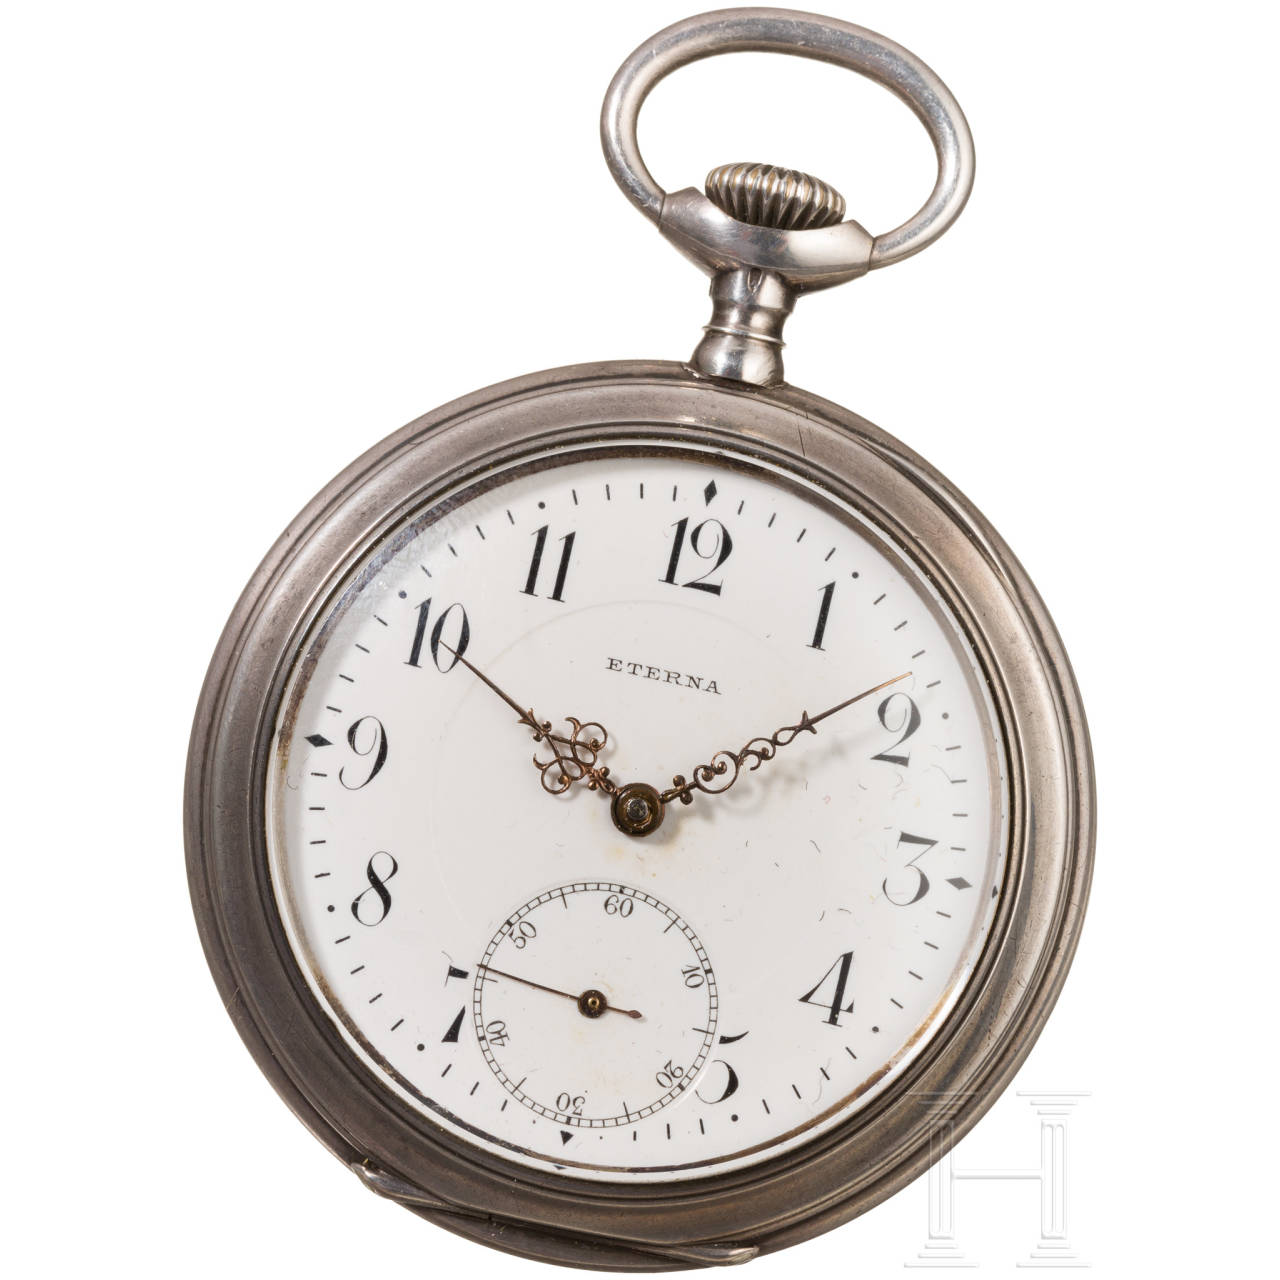 Pocket watch as prize in the 4th Thuringian Infantry Regiment No. 72